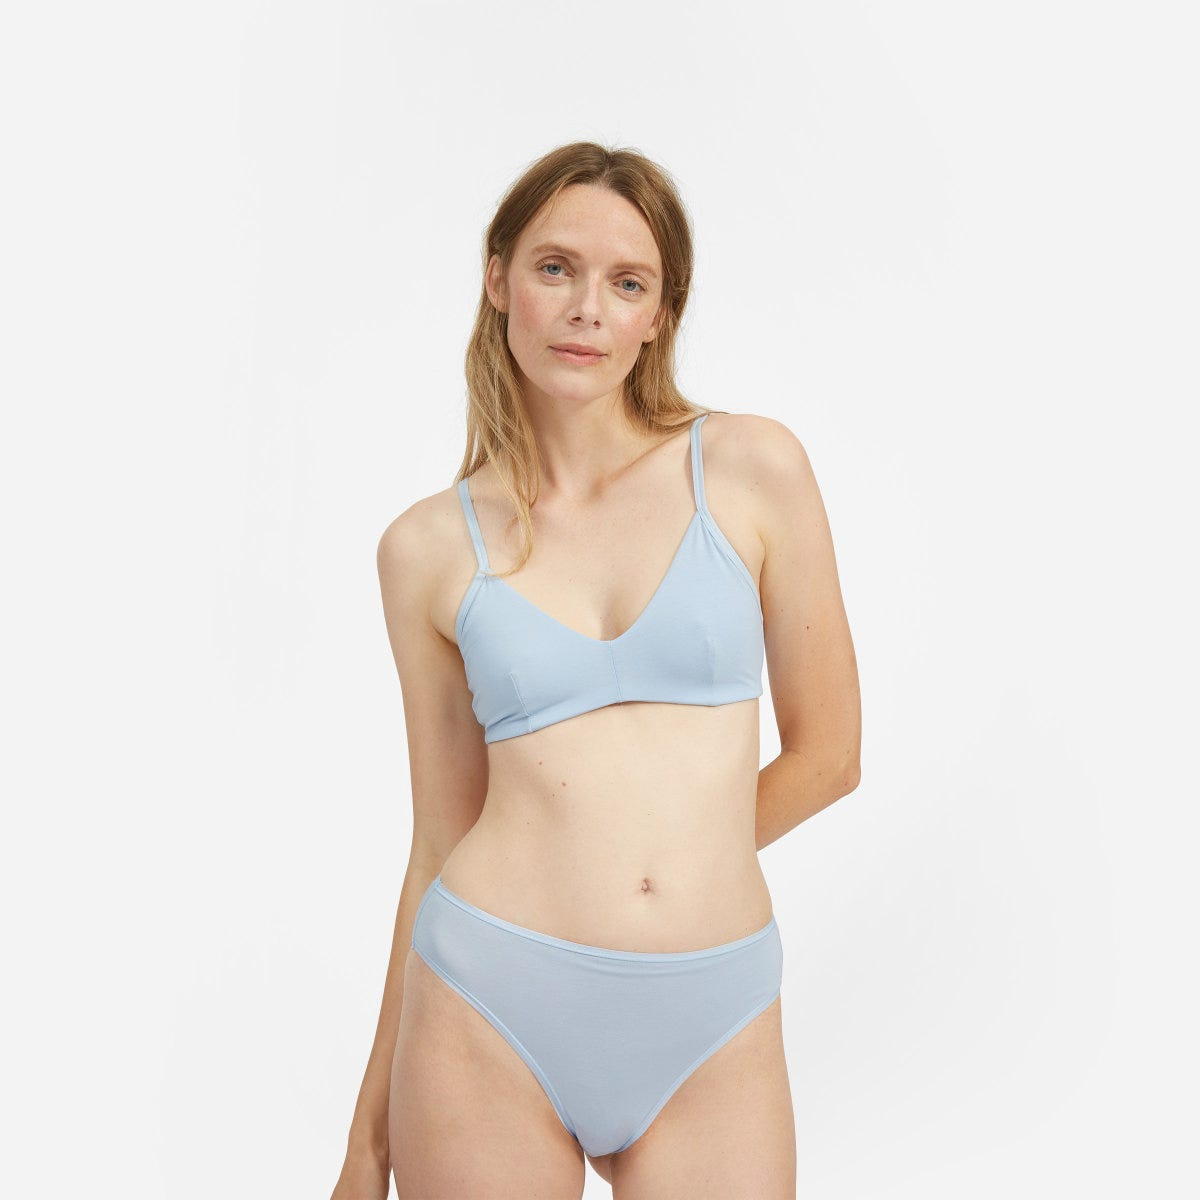 2db4c581142 The Best Sustainable Stylish Lingerie Brands For Women